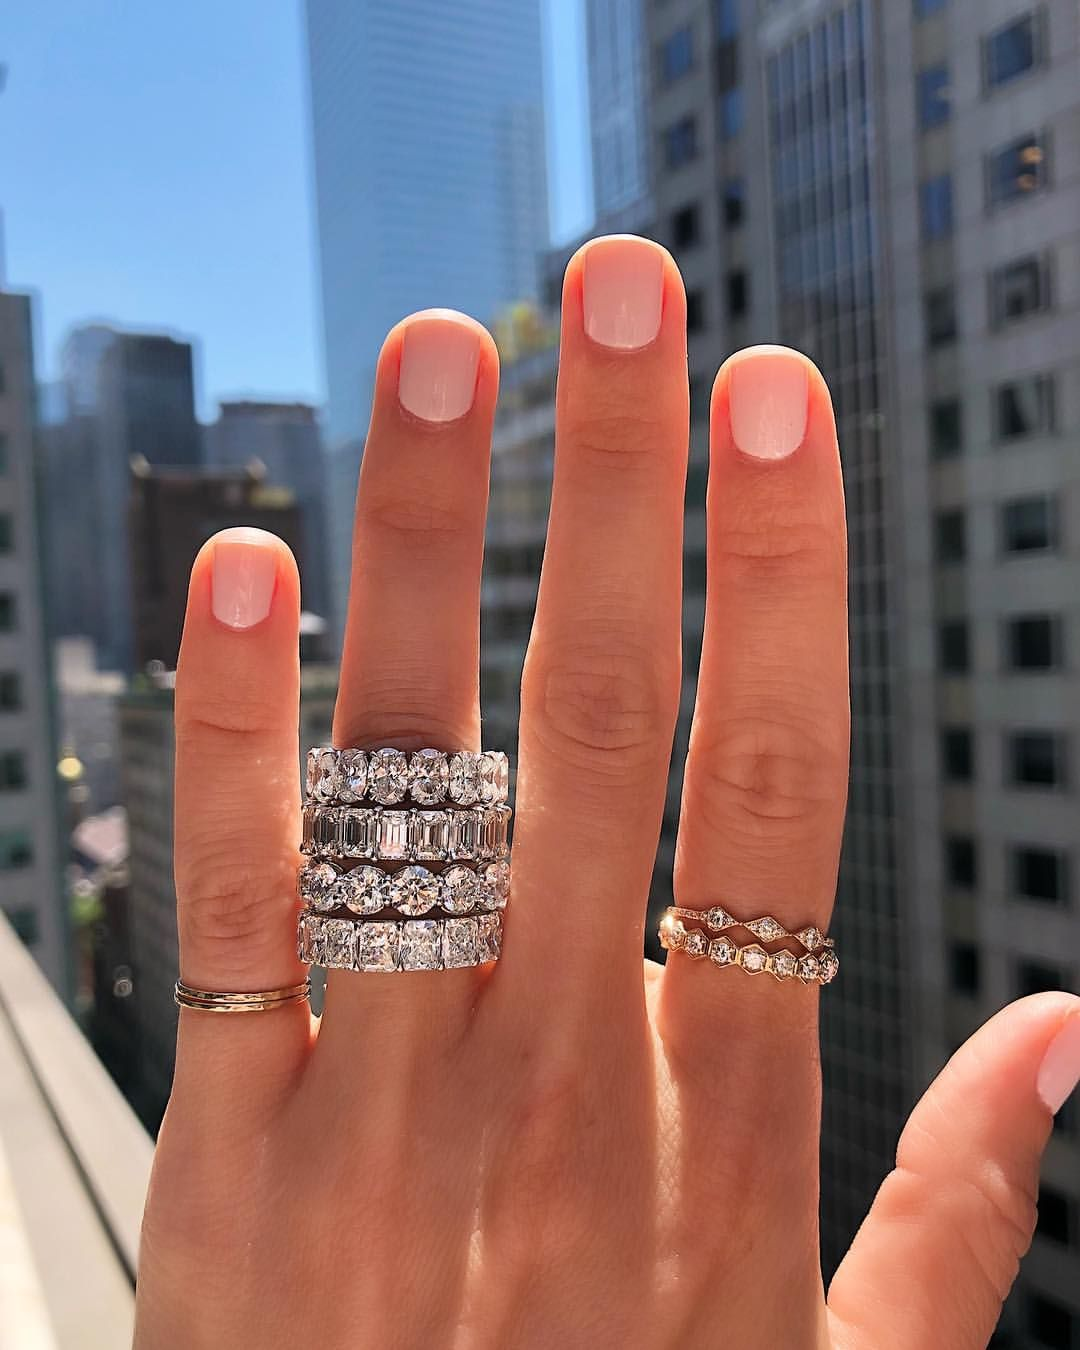 Pin by Ange Plowman on Engagement ring photos in 2020